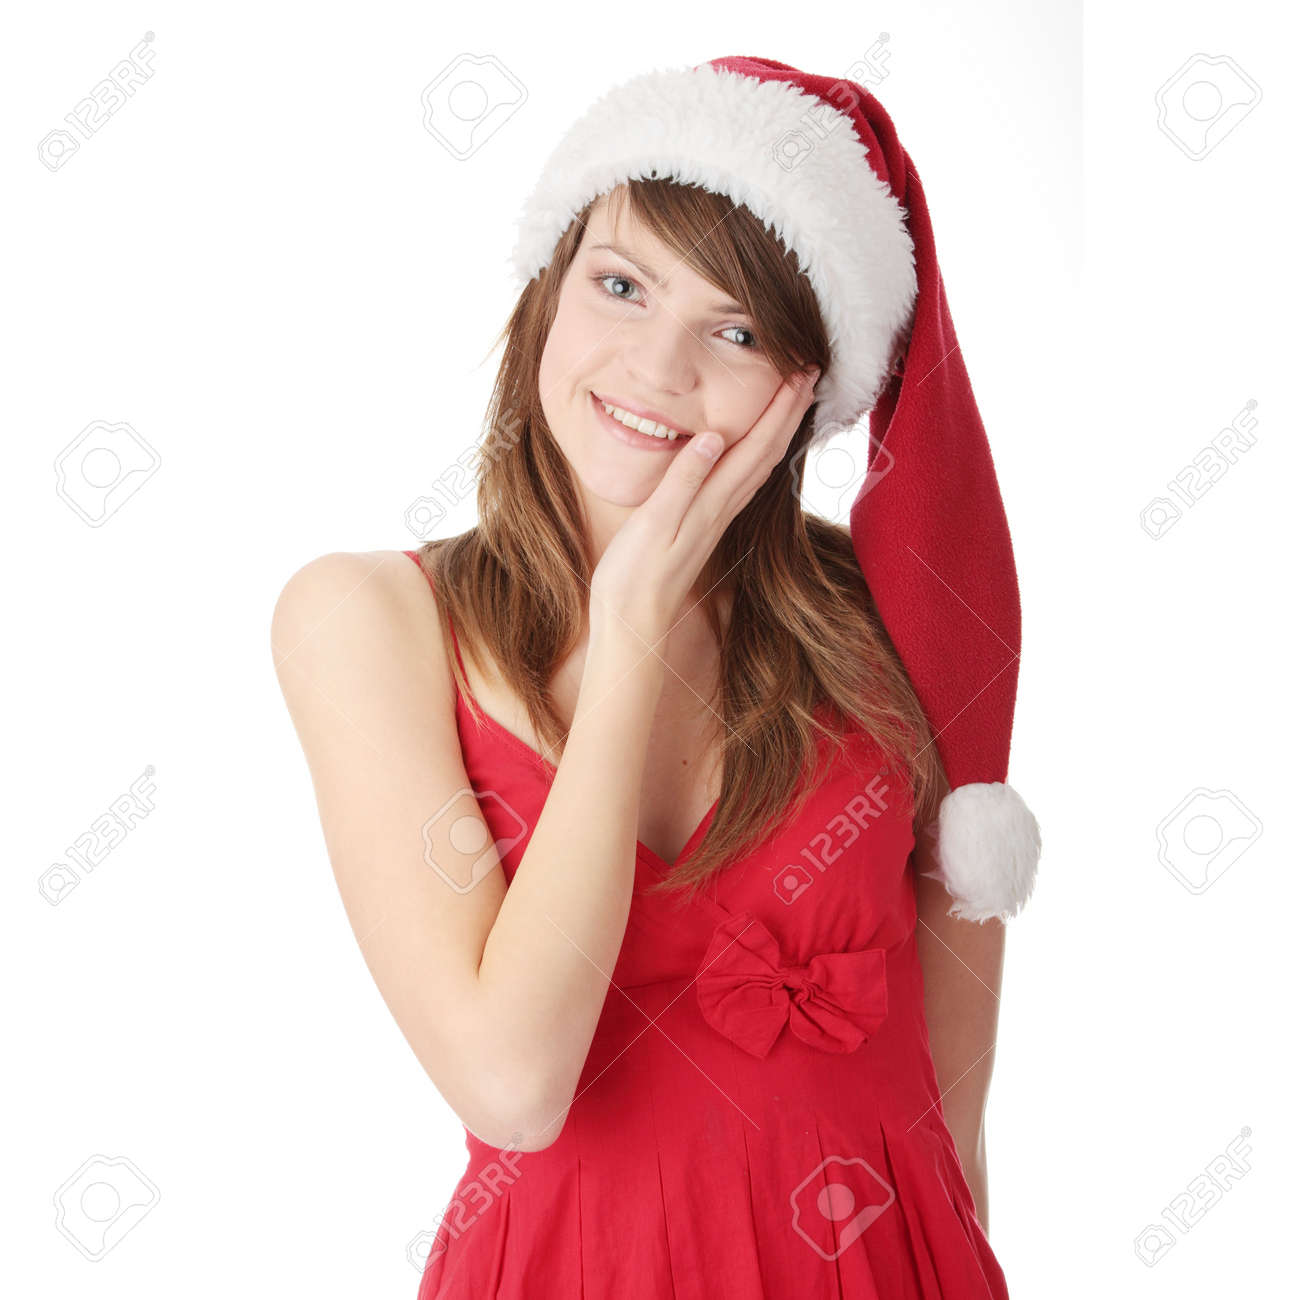 307863e4ec2d7 Portrait Of Pretty Christmas Teen Girl In Red Dress And Santa ...